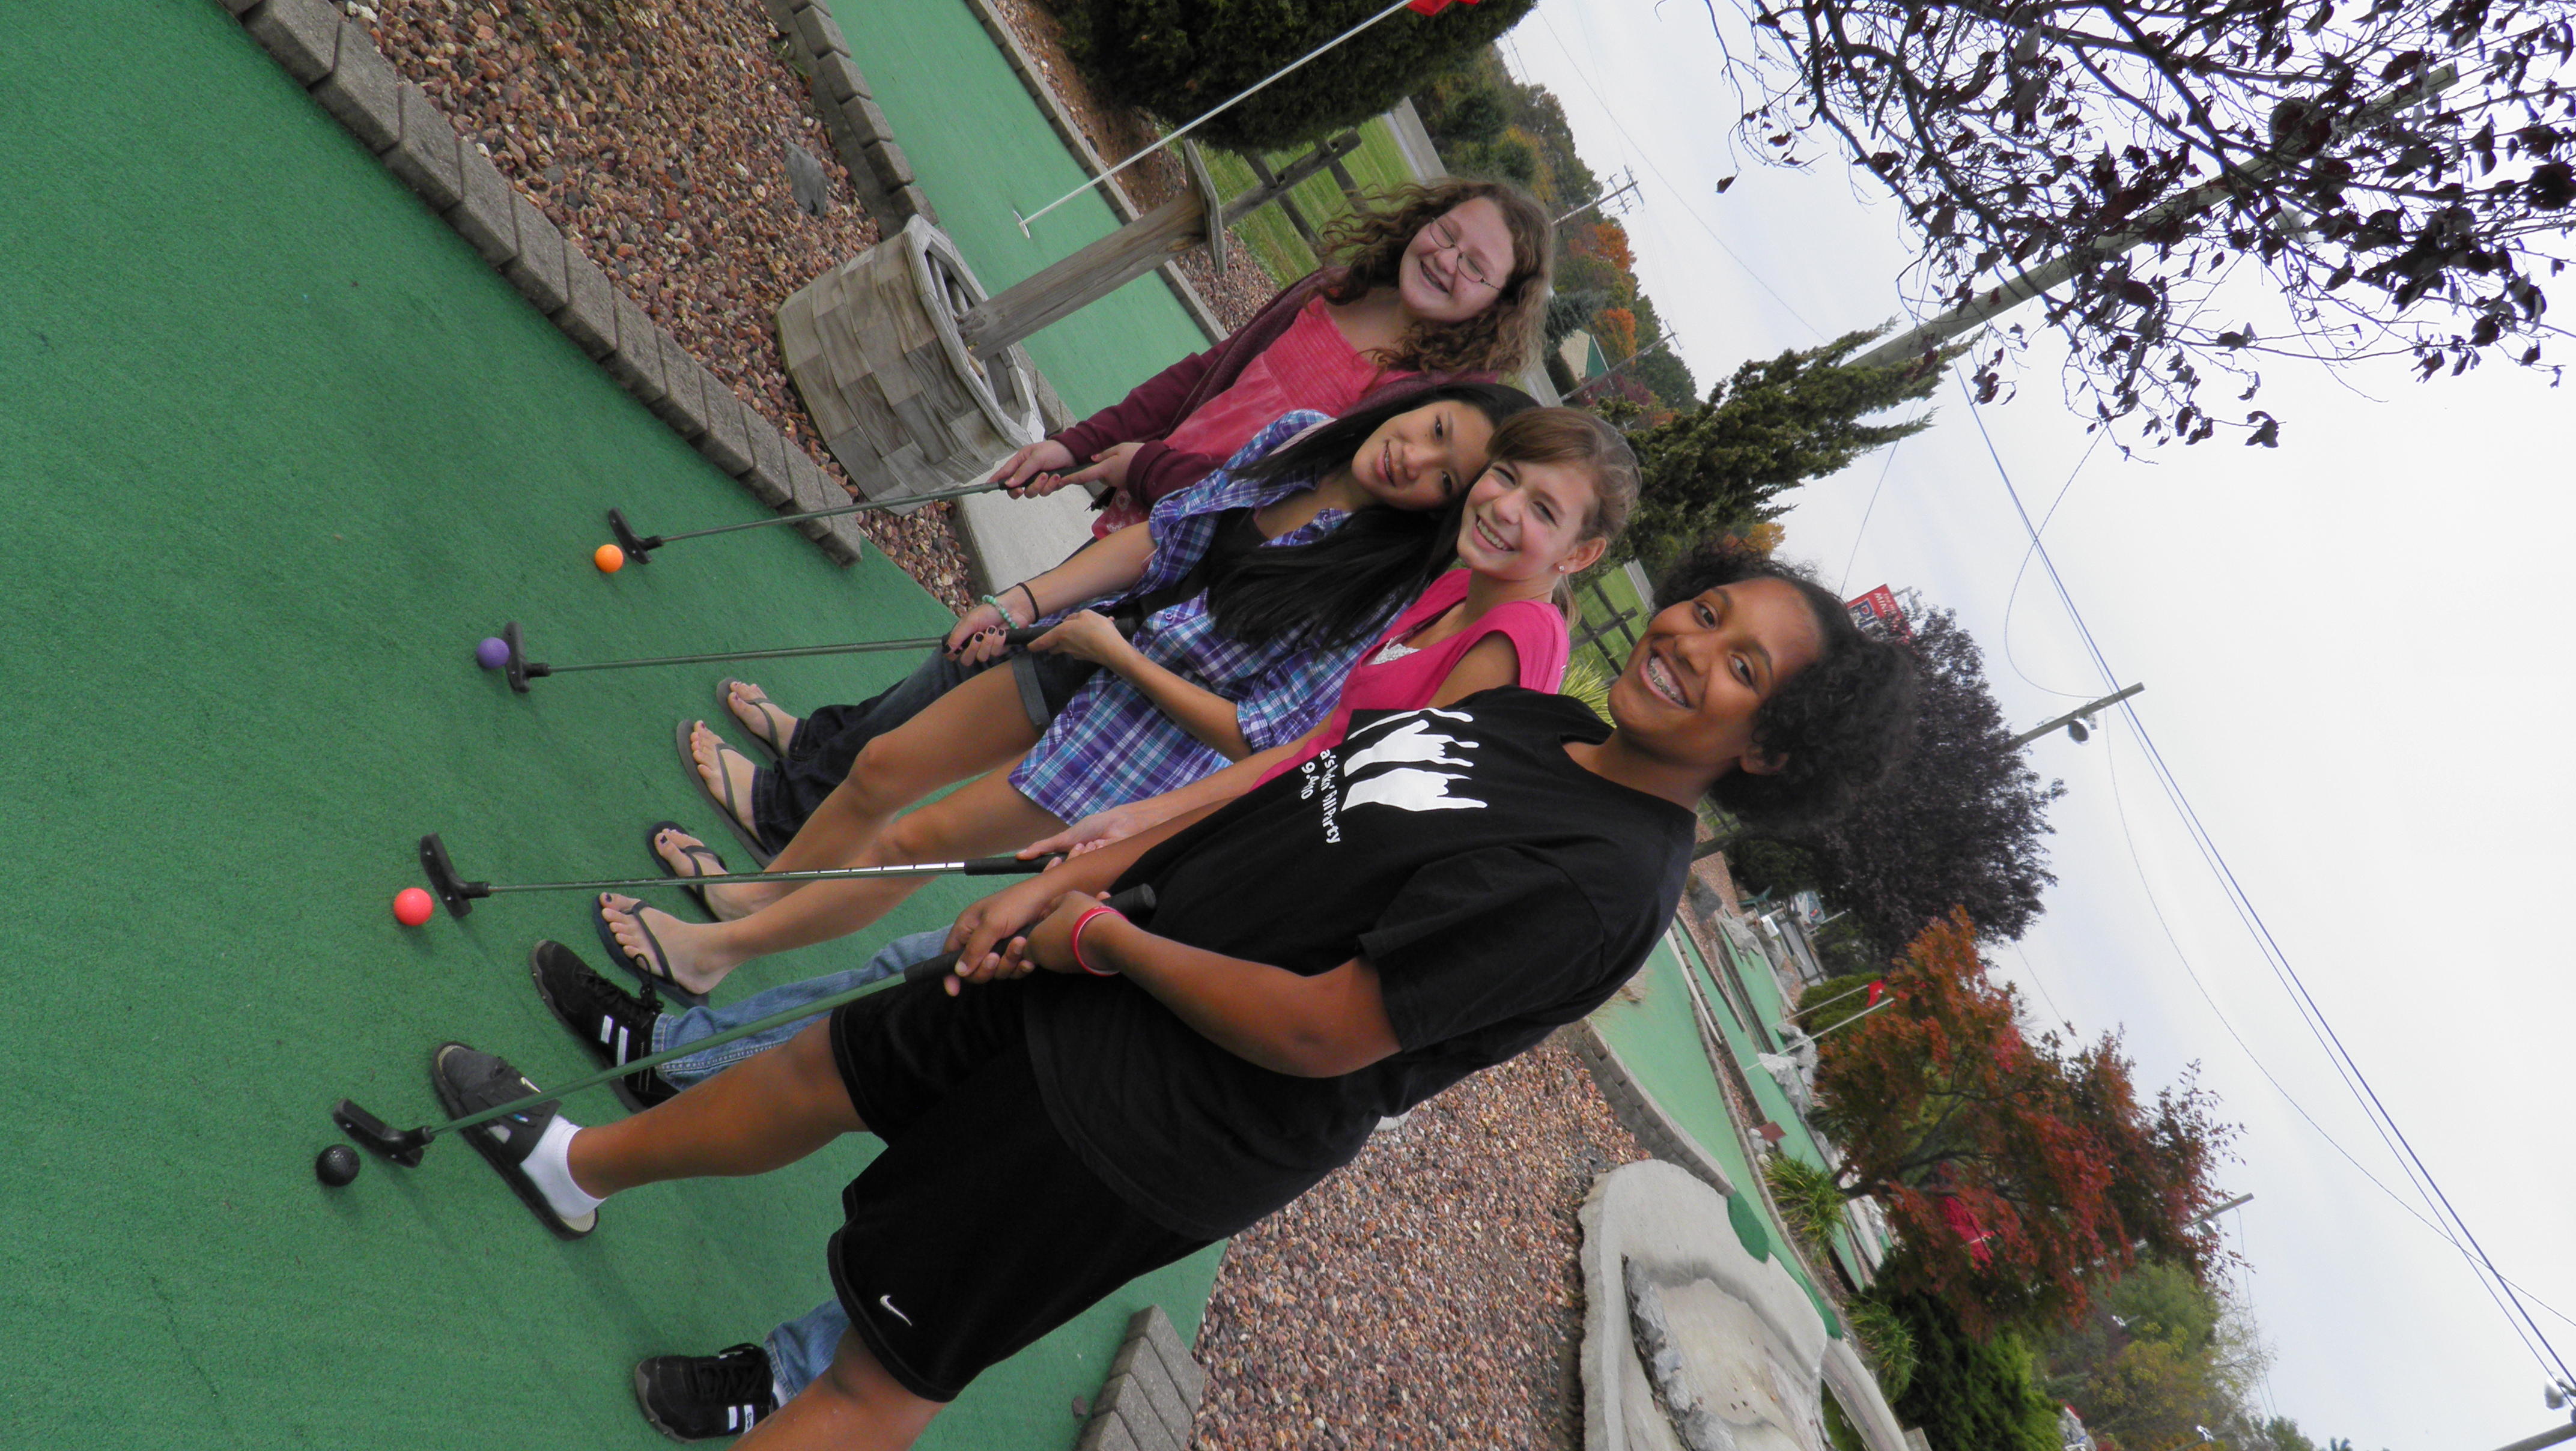 images/stories/HeaderImages/Frame1/Girls at Putt U.jpg